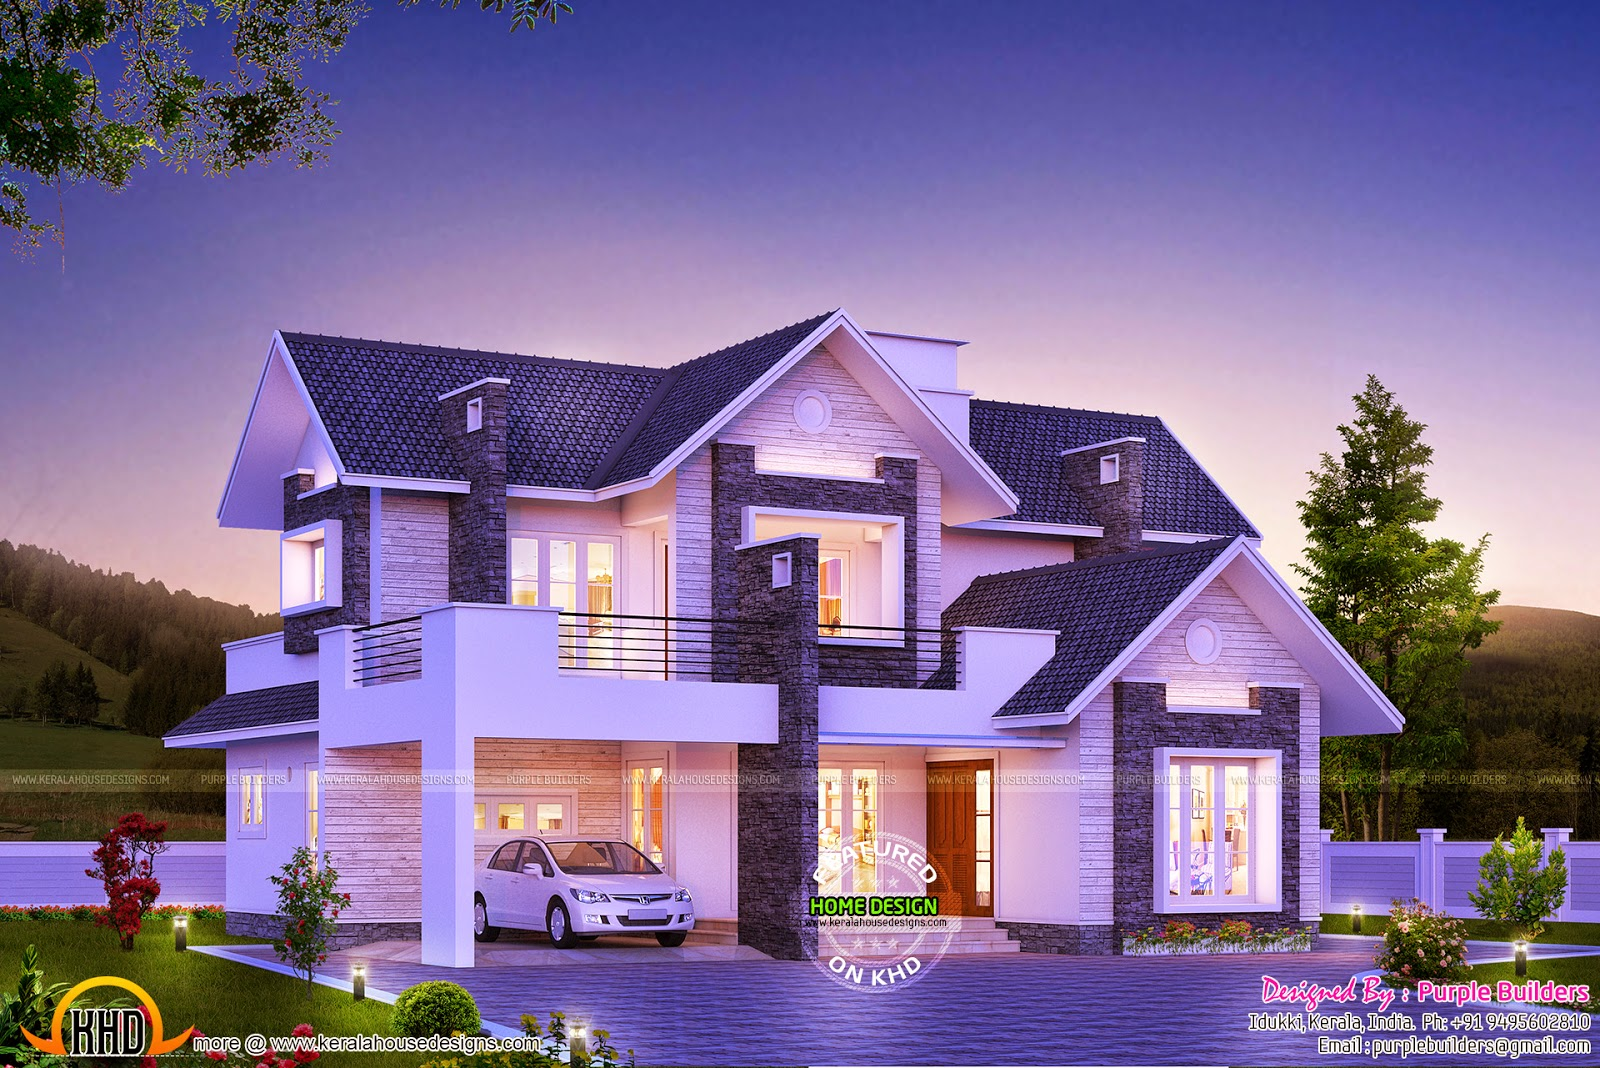 Super dream home kerala home design and floor plans for House model design photos